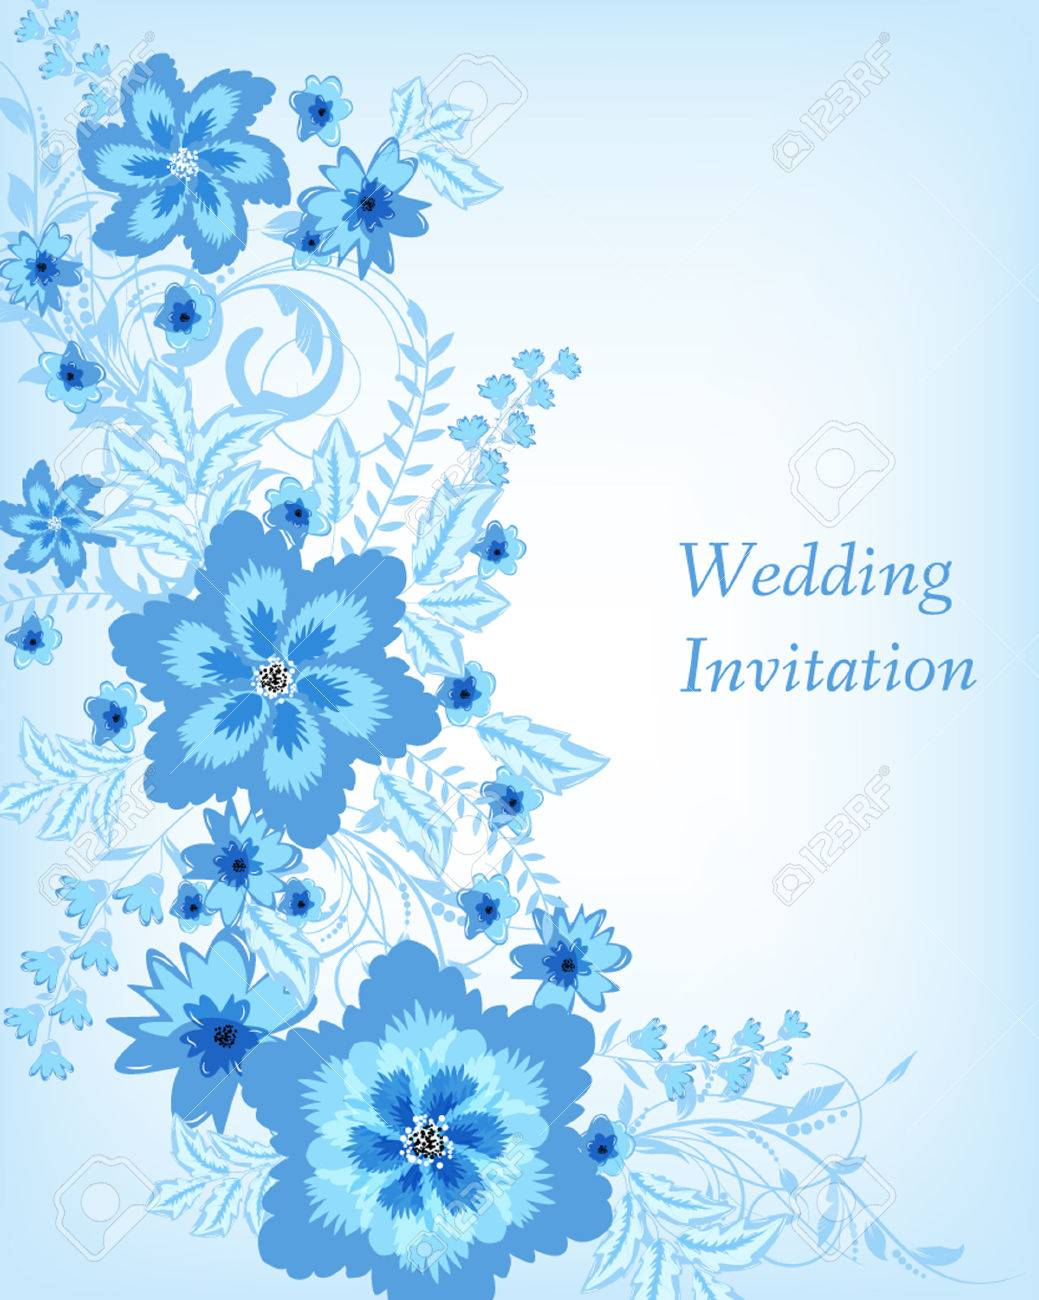 Wedding Invitation Card Flowers Abstract Colorful Background Royalty Free Cliparts Vectors And Stock Illustration Image 39721601